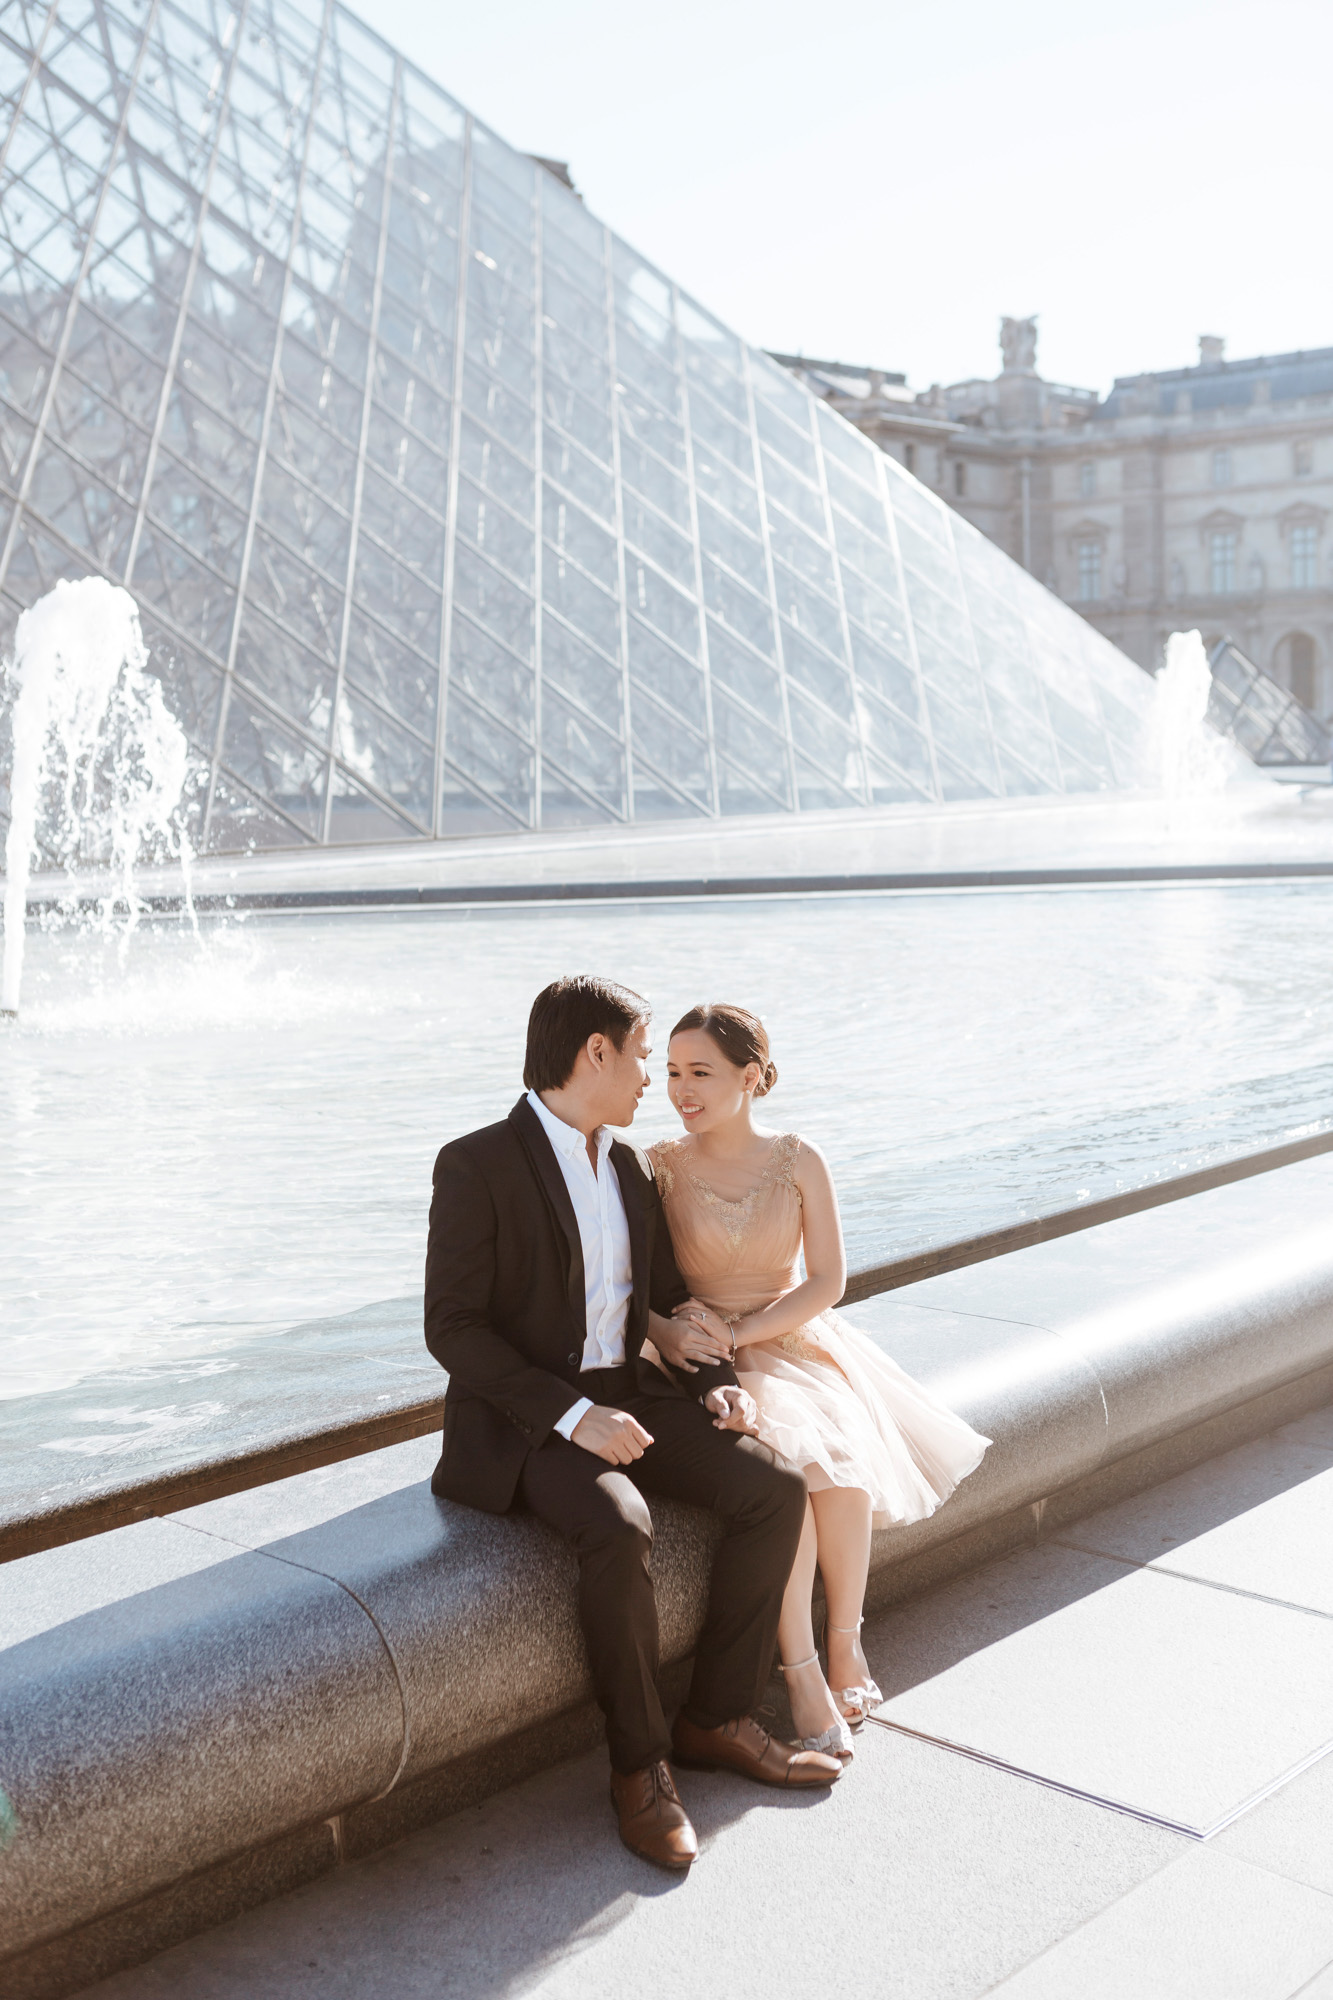 Pre-wedding couple portrait sitting by the Pyramid at the Louvre Museum captured by Paris Photographer Federico Guendel